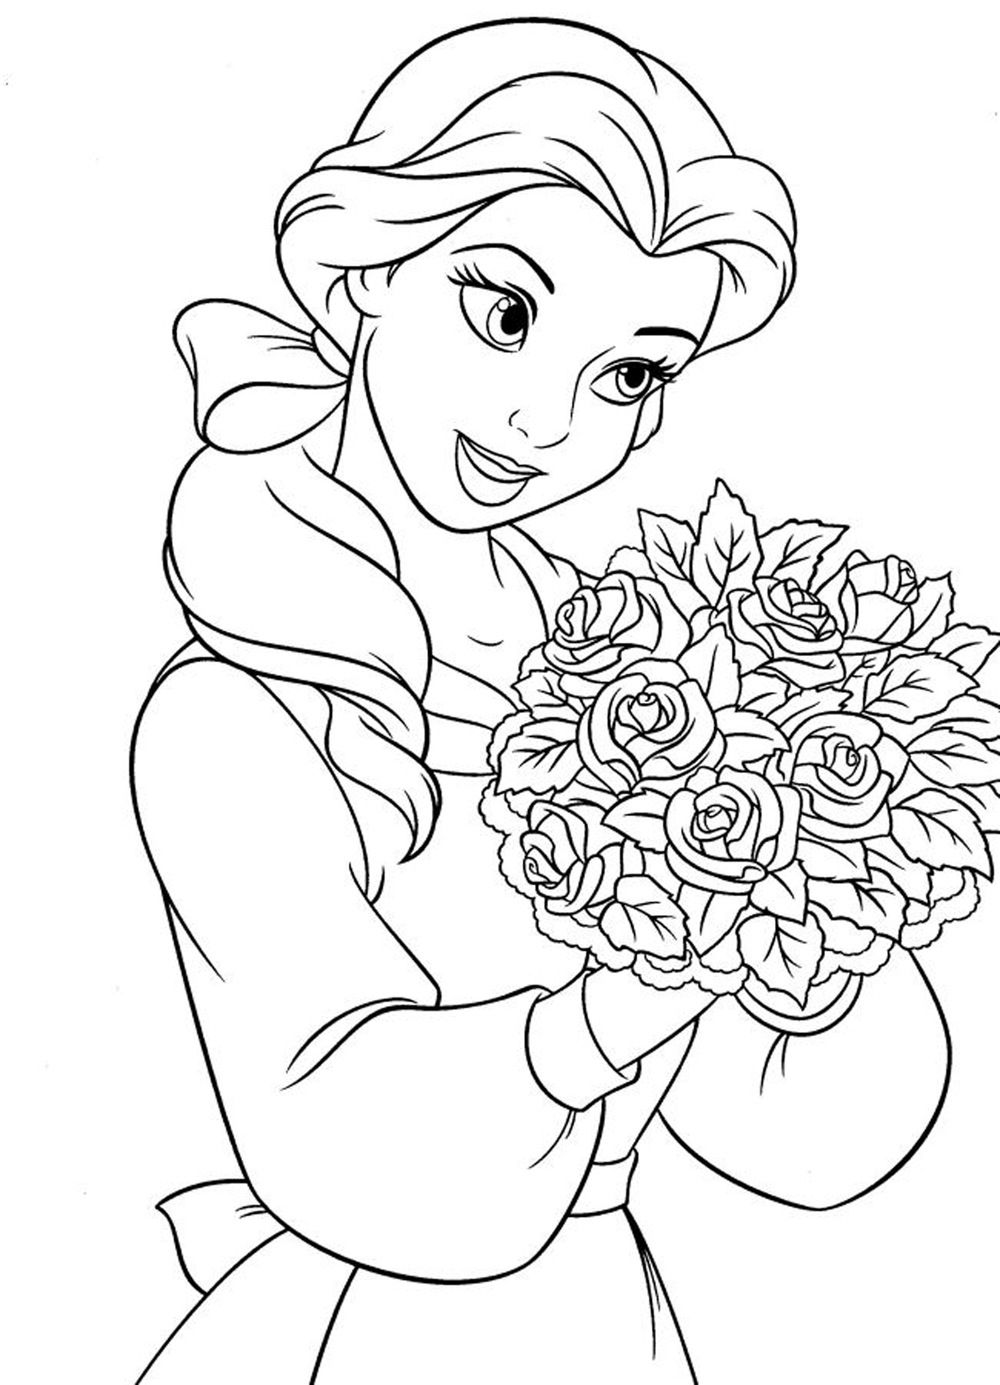 Coloring games girl - Best 25 Online Coloring Pages Ideas On Pinterest Coloring Book Online Adult Coloring Pages And Sugar Candy Skulls